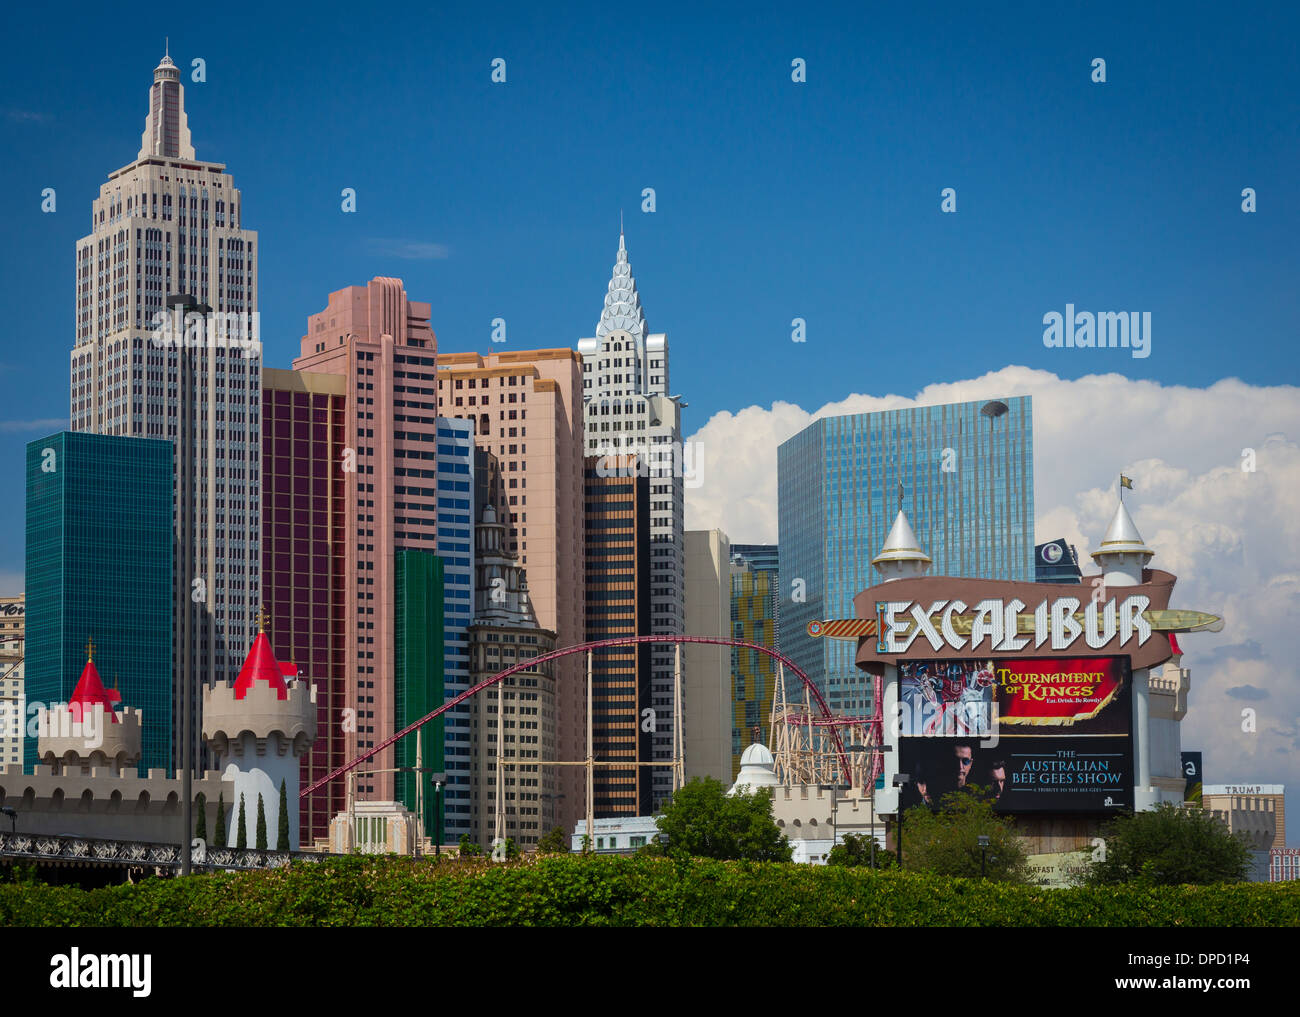 Hotels and casinos along Las Vegas Boulevard in Las Vegas, Nevada - Stock Image